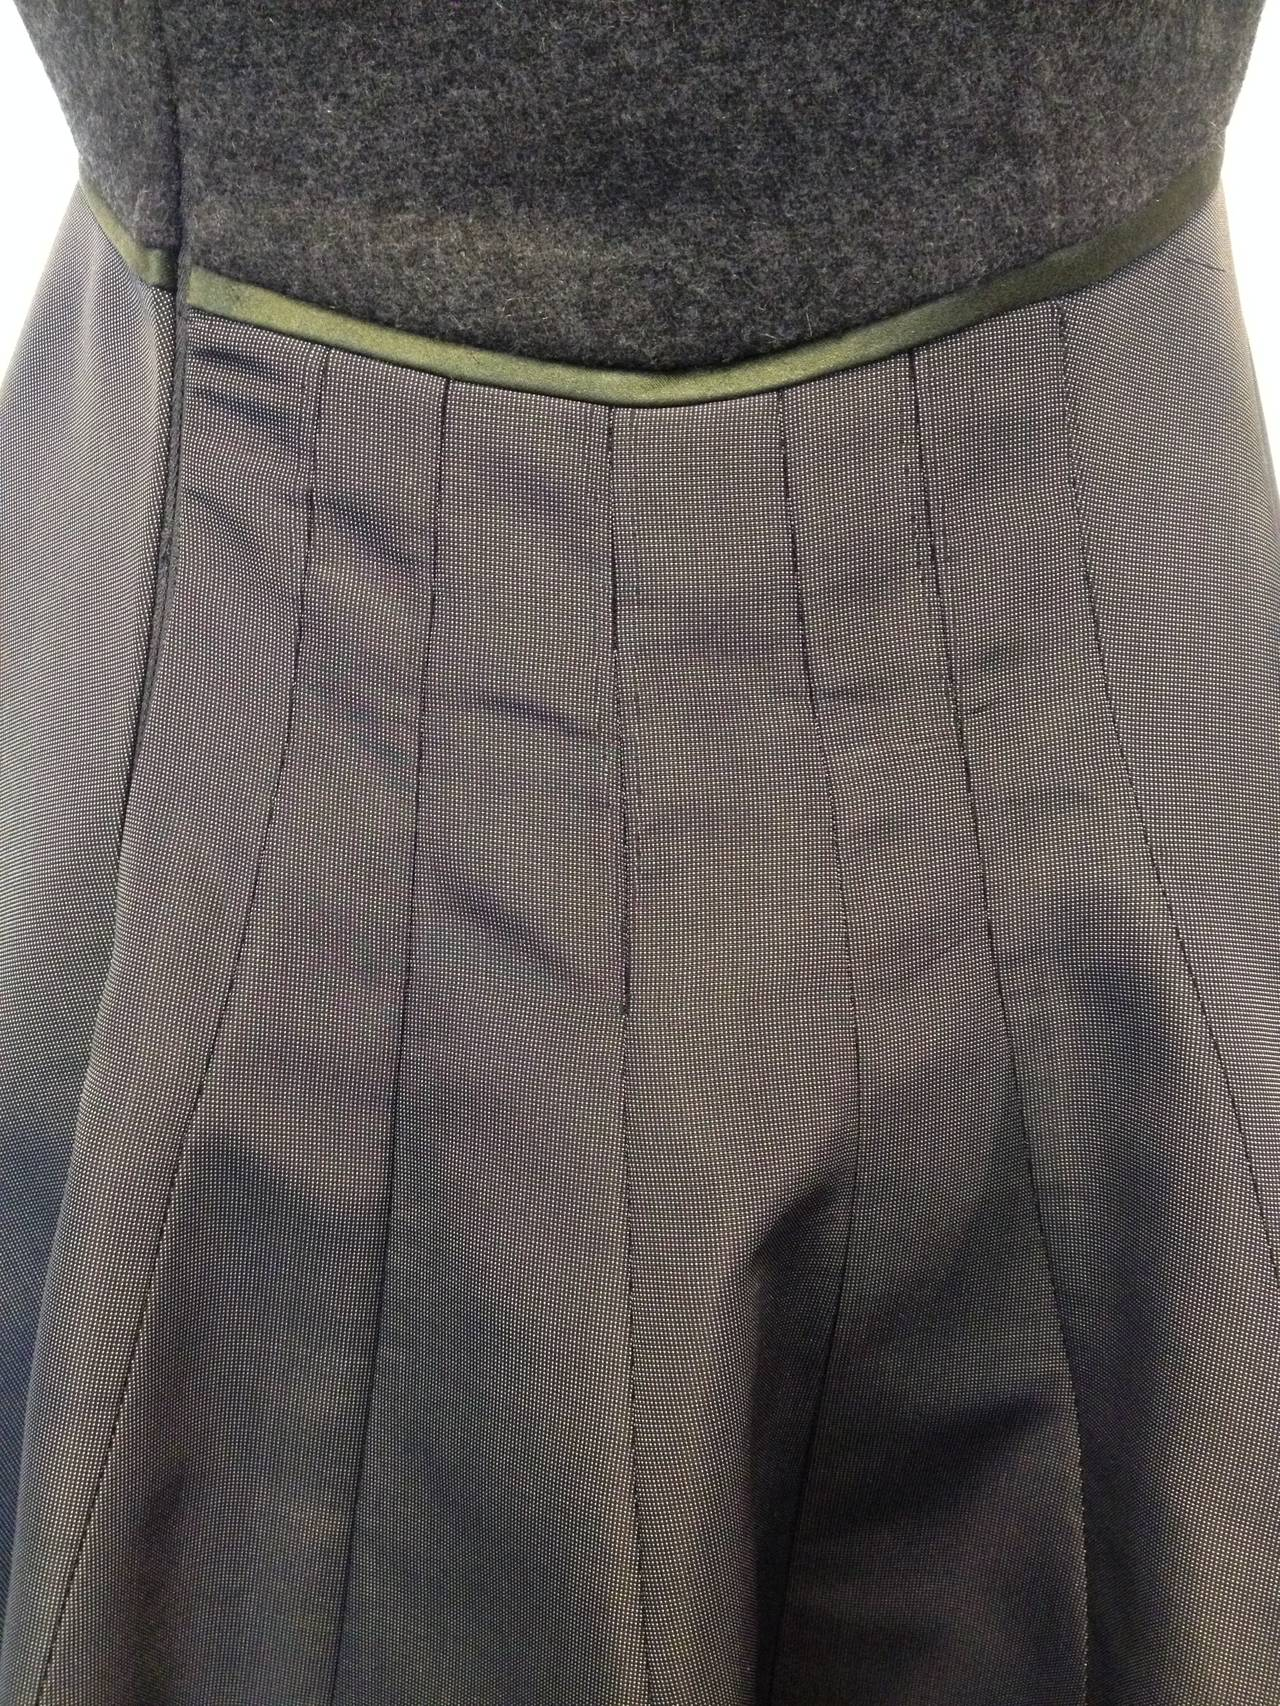 Chado Ralph Rucci Charcoal Cashmere and Silk Gown For Sale 4